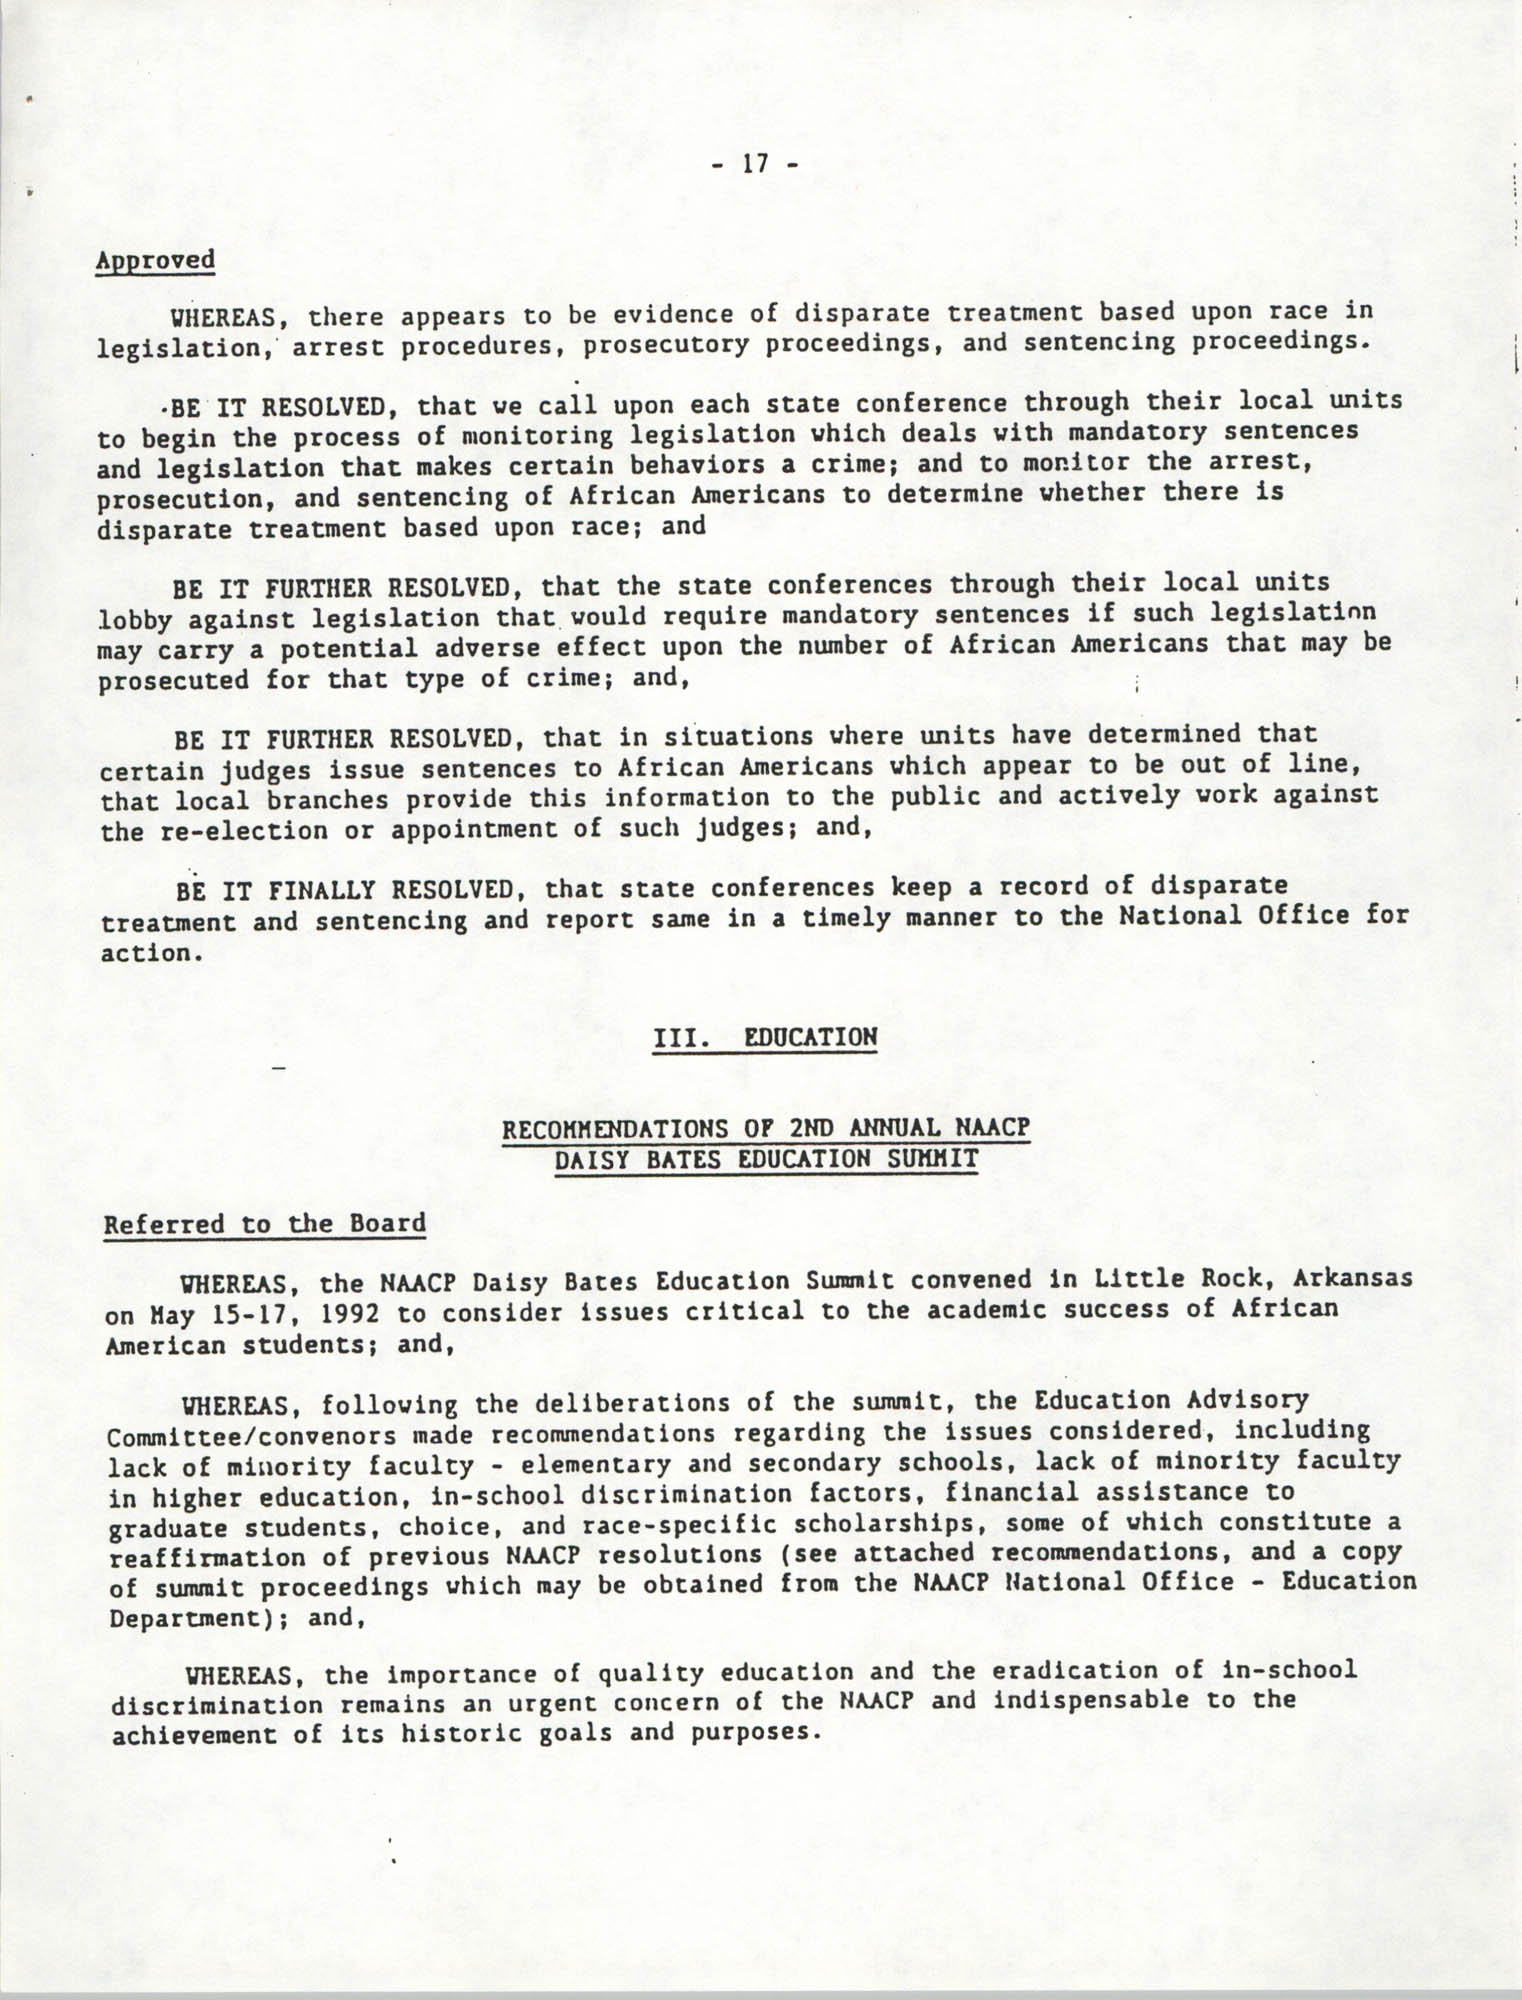 Education Resolutions 1993, Page 17